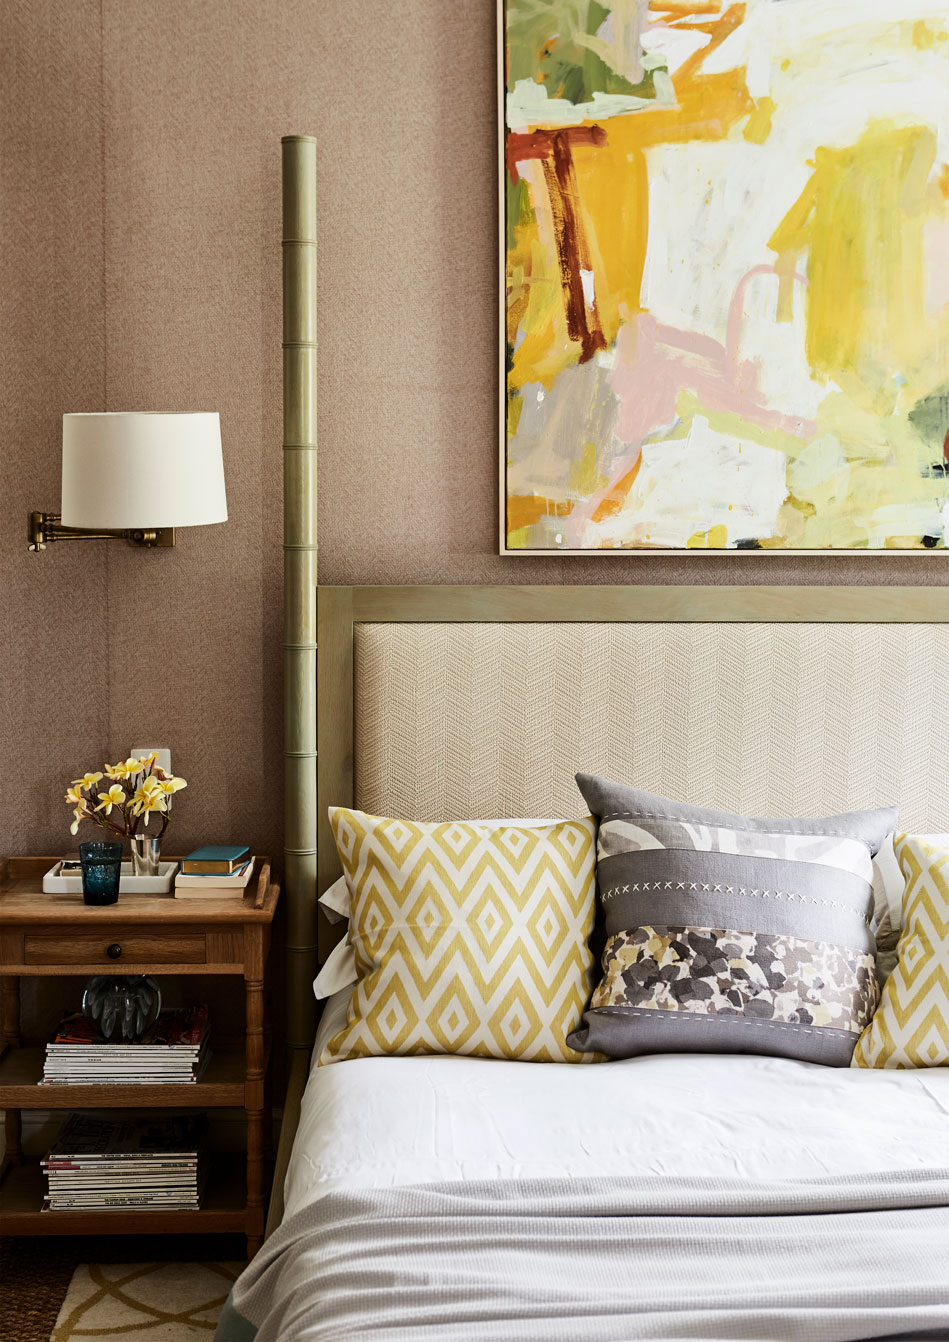 The main bedroom has a relatively muted colour palette, with the bright tones of the recently acquired artwork adding a few more vibrant tones.